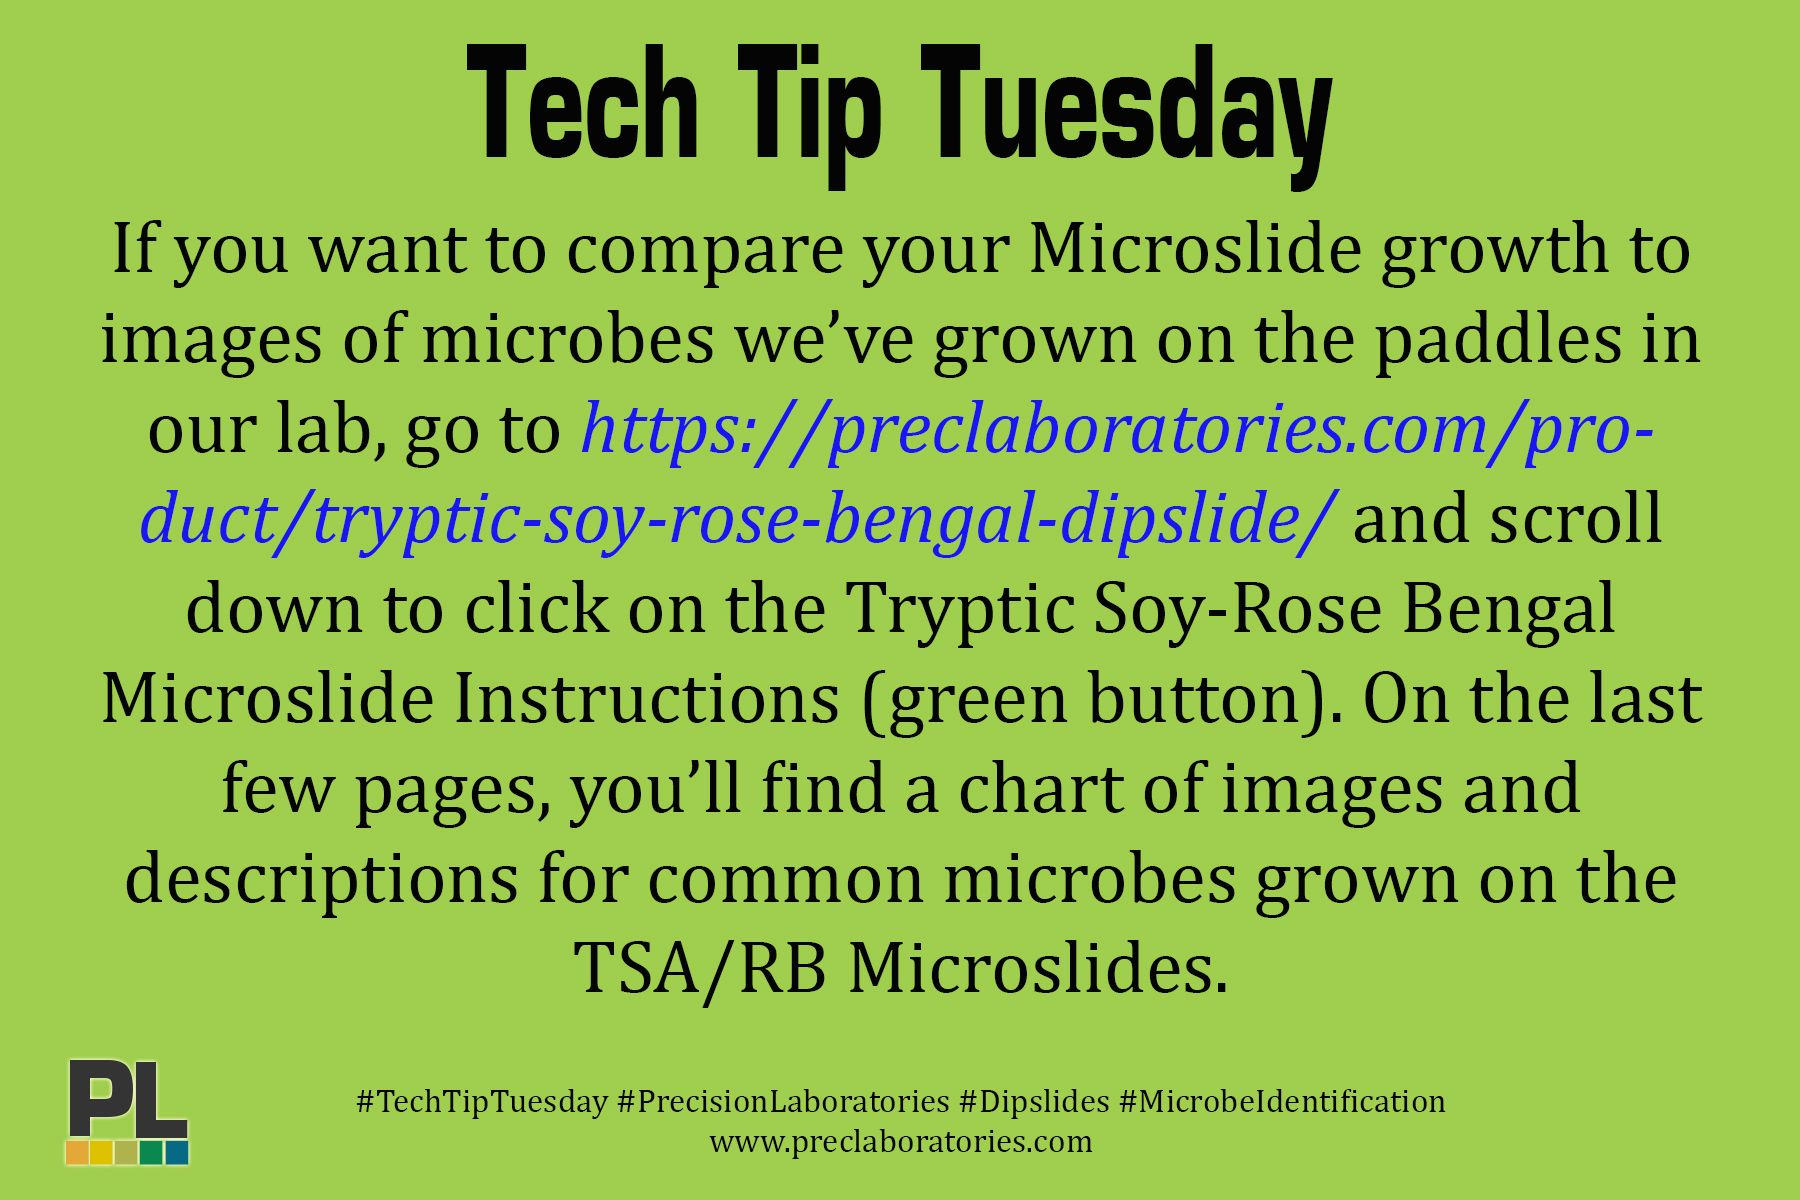 If You Want To Compare Your Microslide Growth To Images Of